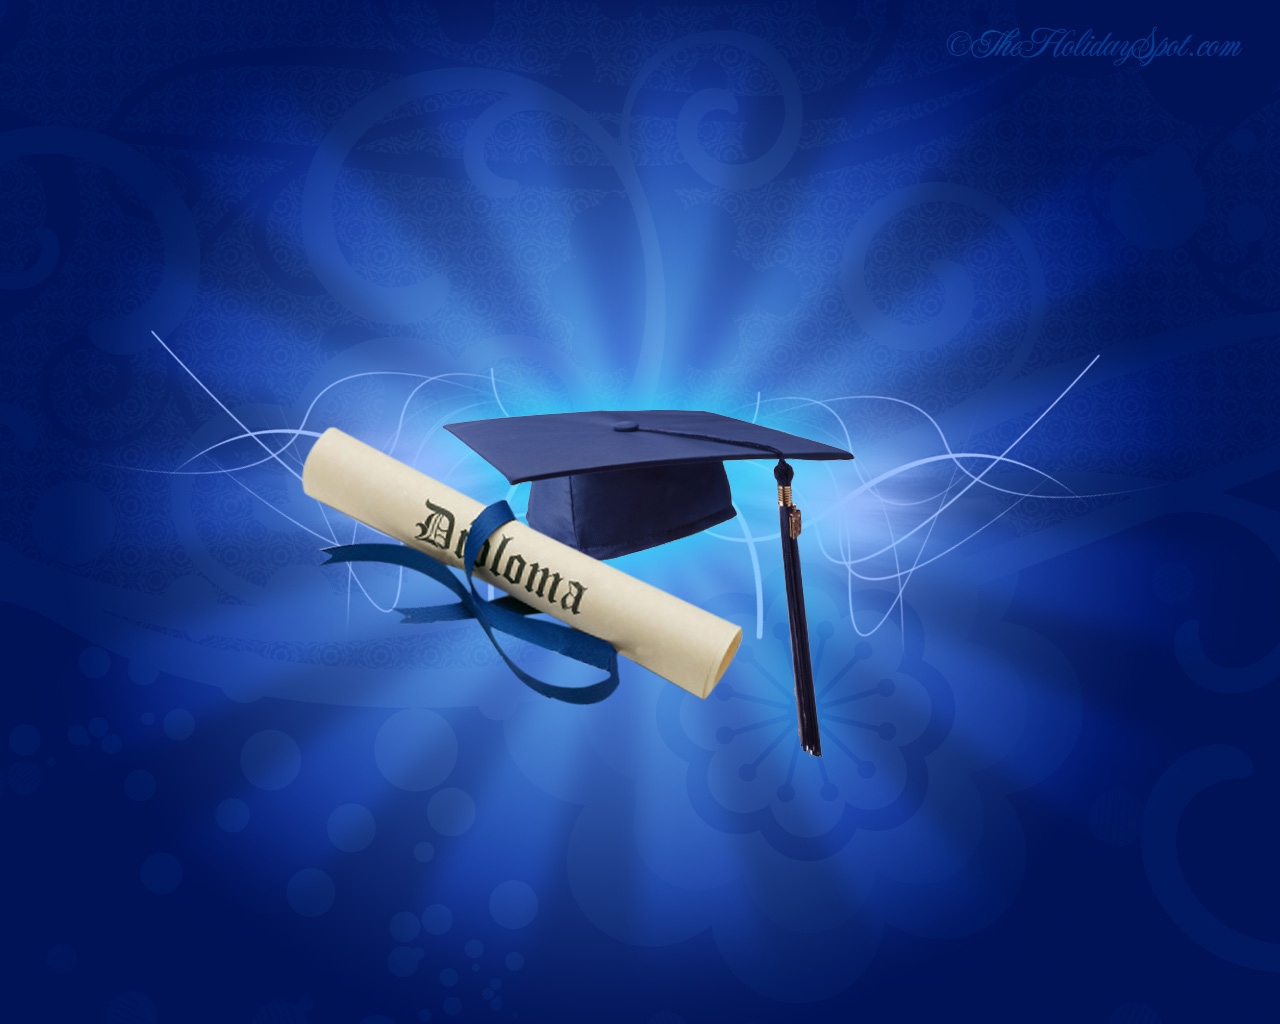 High school graduation images - 201.2KB